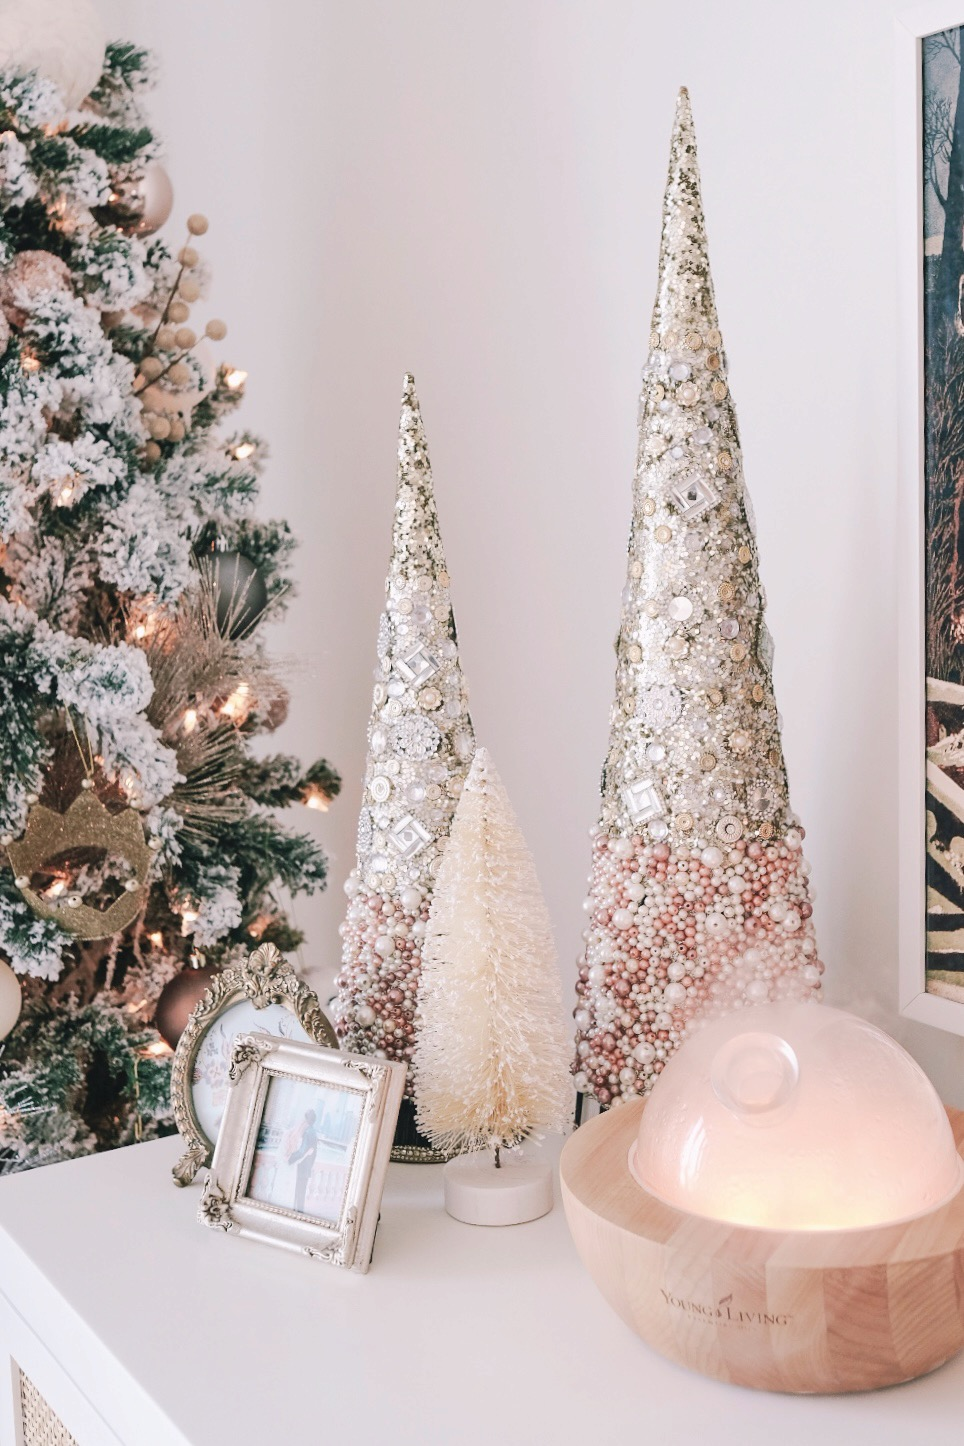 Aria diffuser with Christmas decor | Miss Madeline Rose